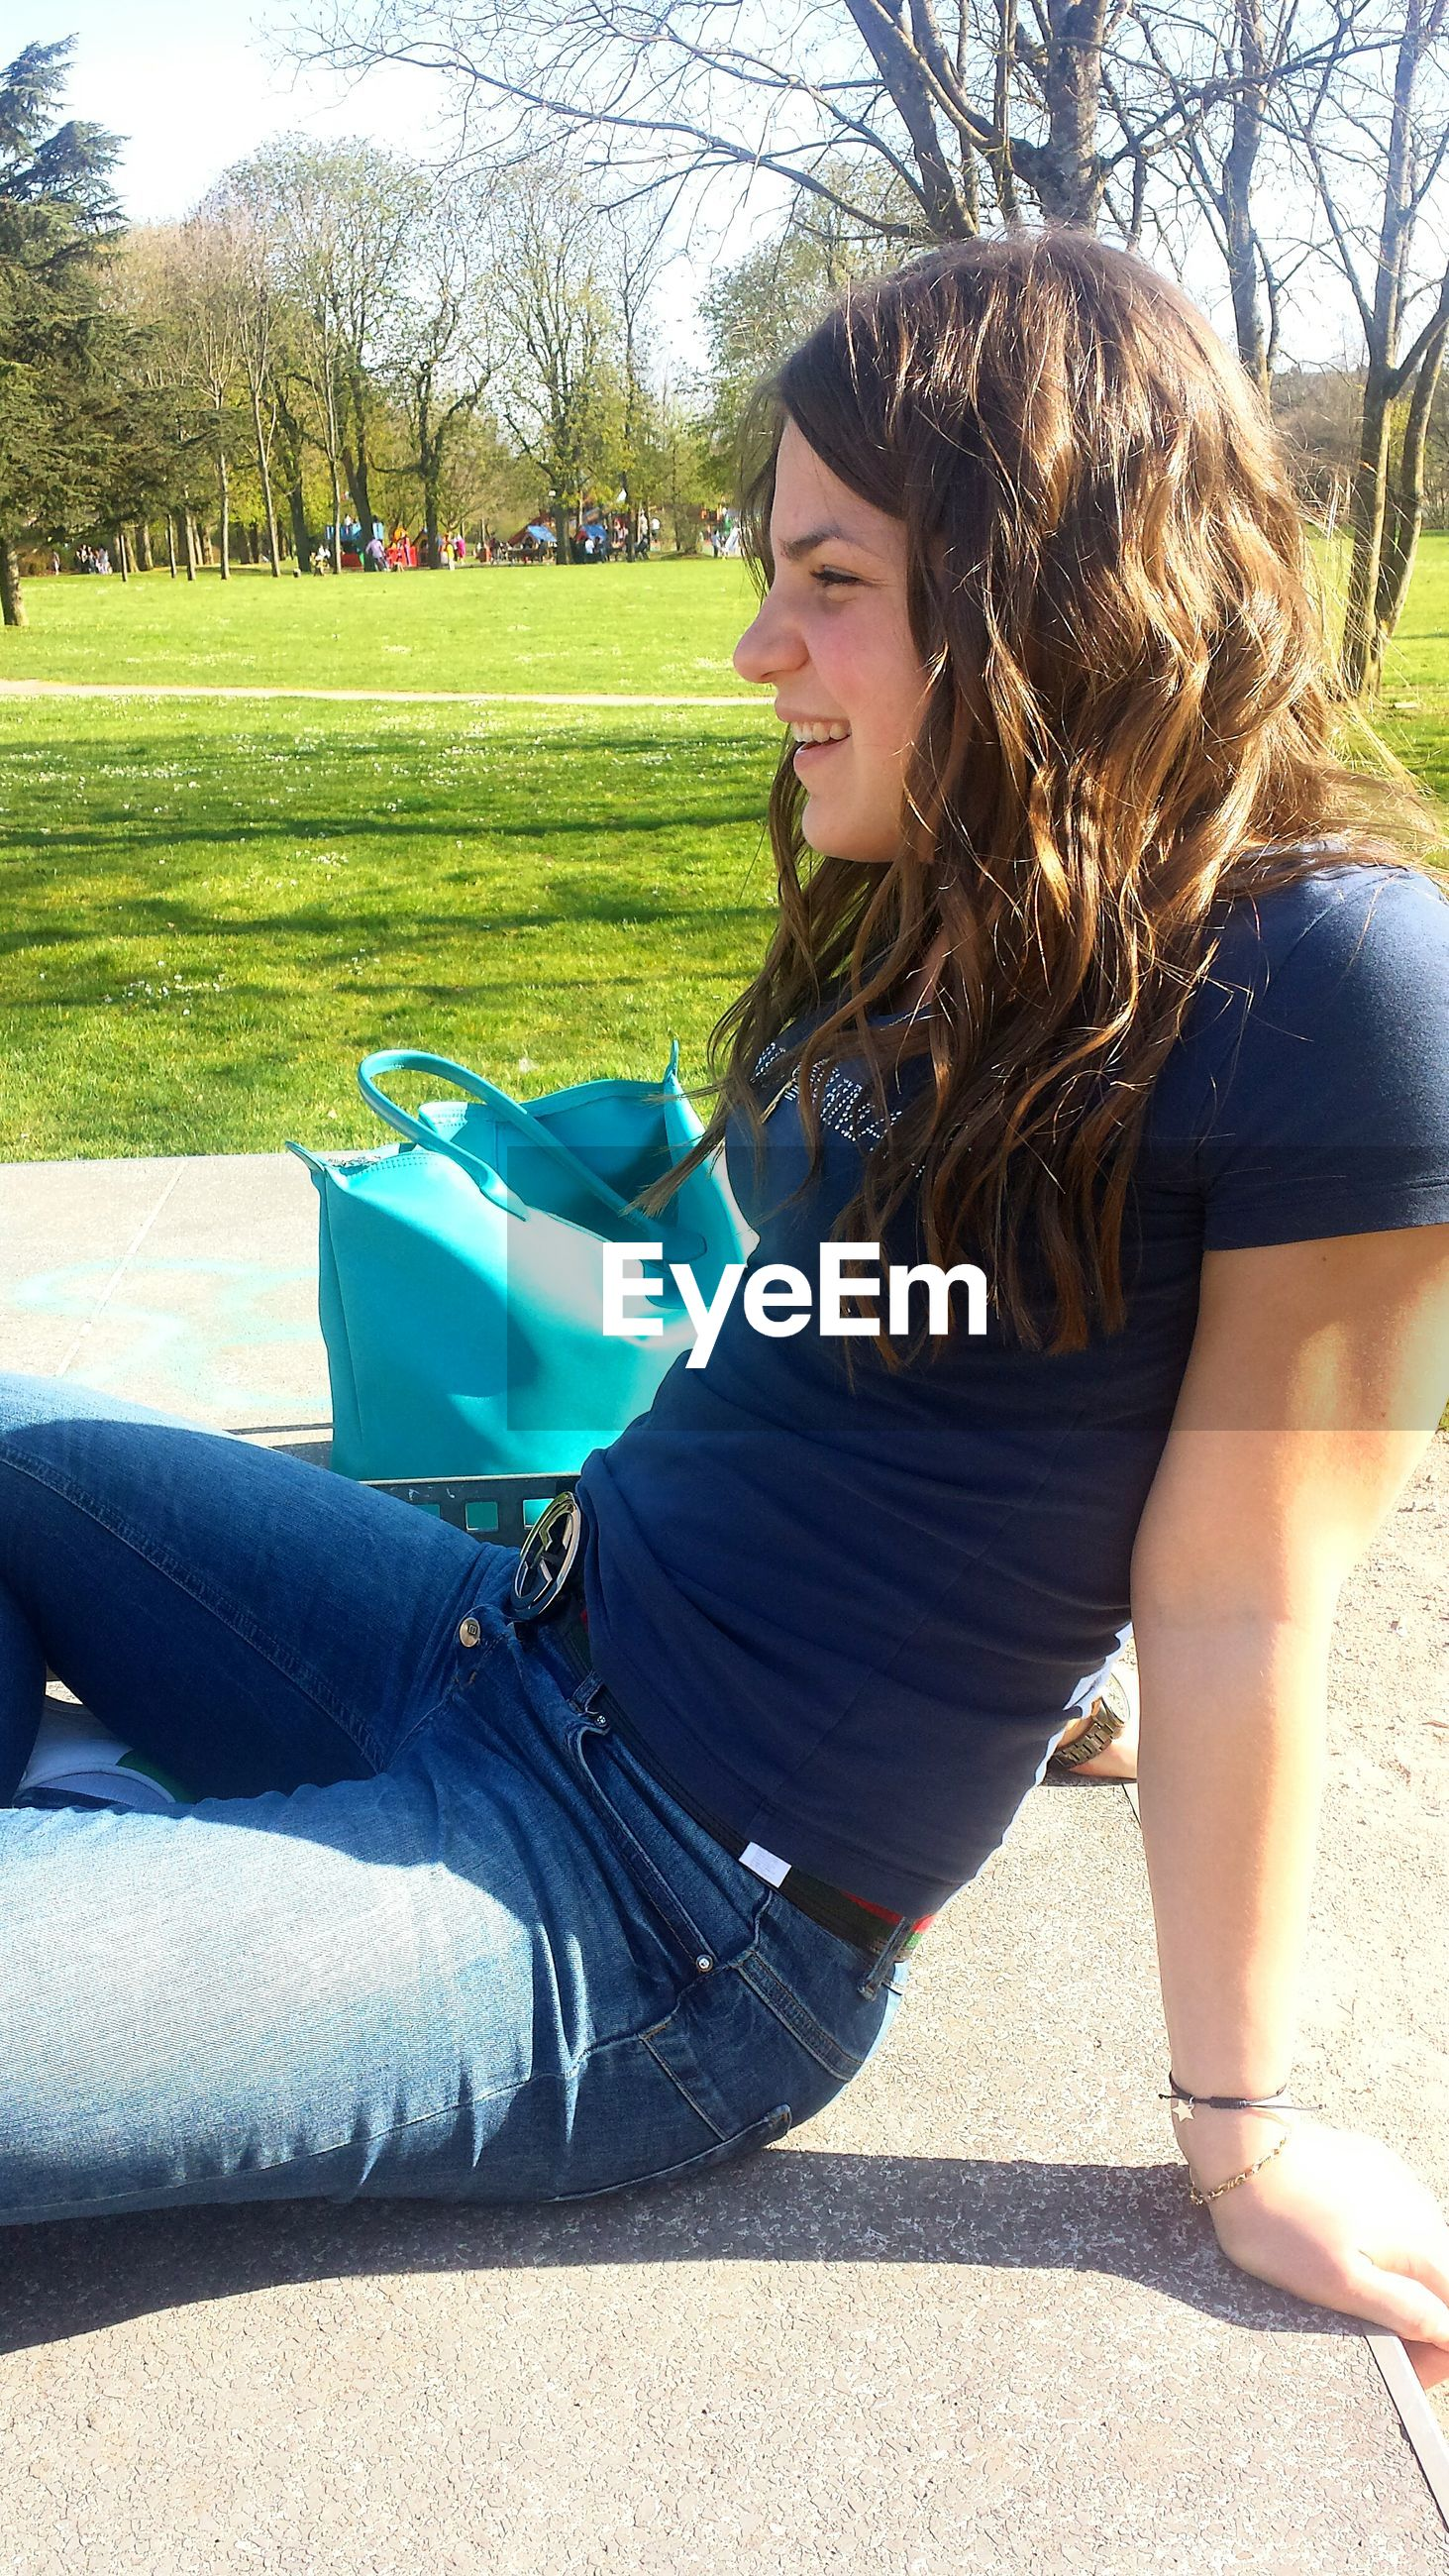 leisure activity, lifestyles, sunlight, tree, person, casual clothing, young adult, park - man made space, childhood, shadow, relaxation, young women, sitting, grass, day, outdoors, sunglasses, side view